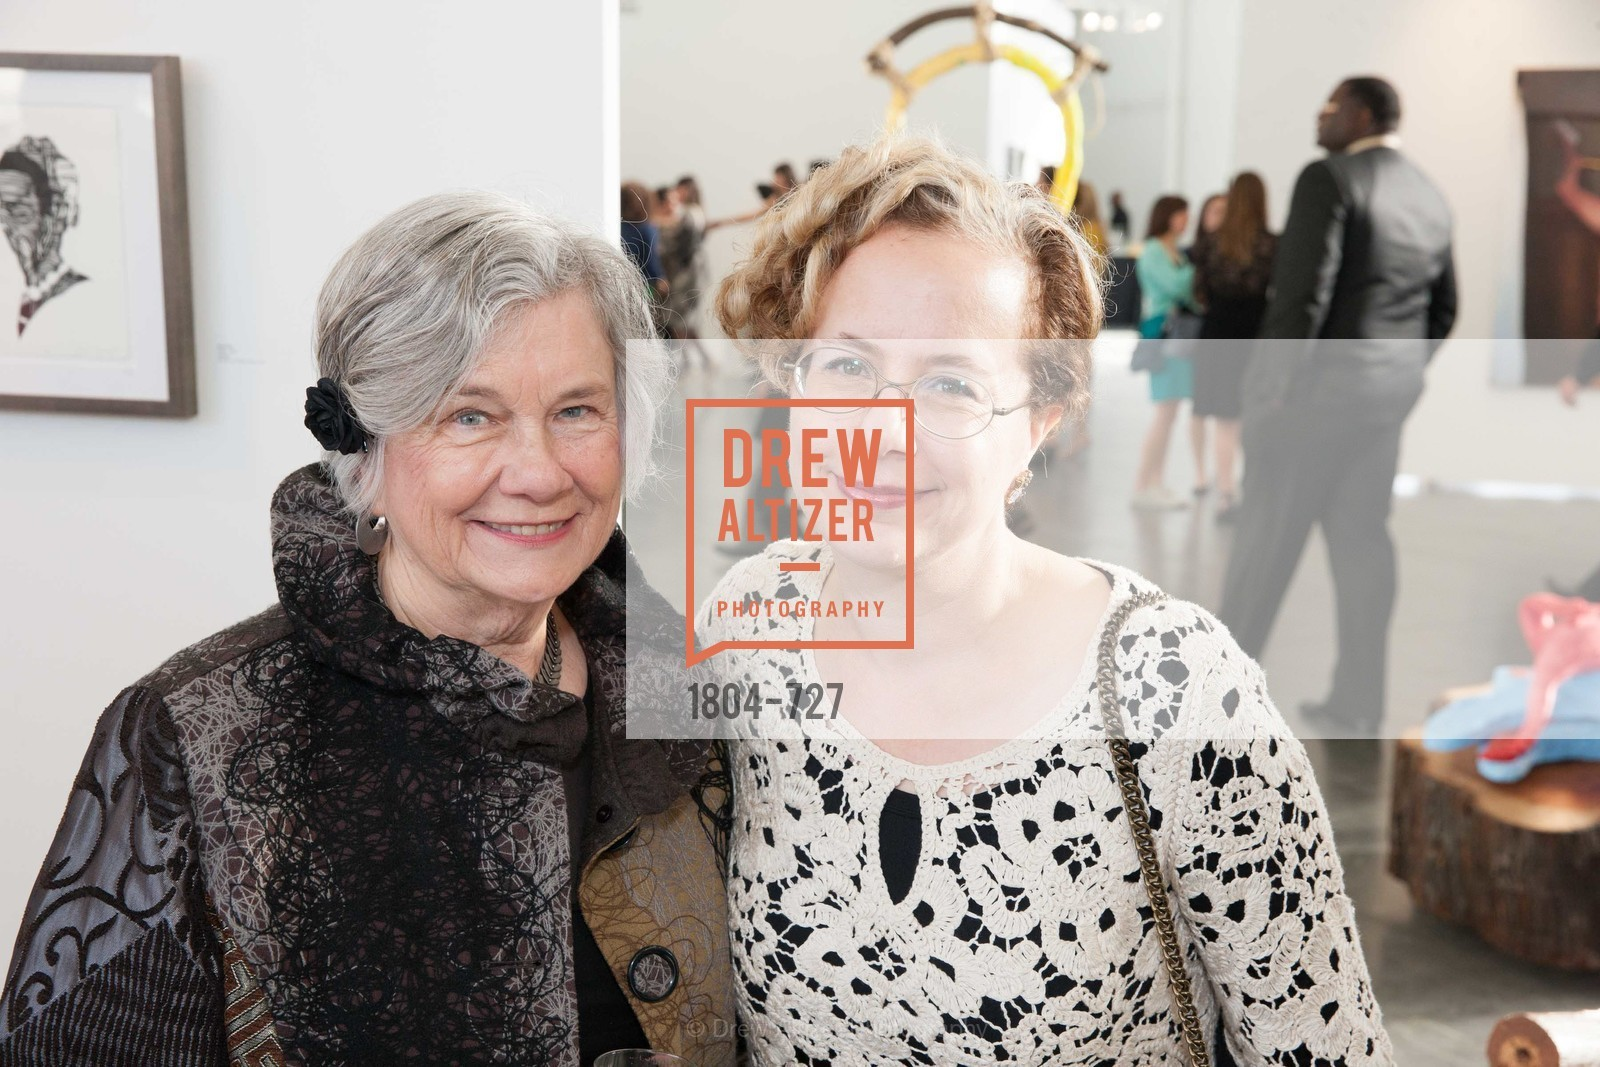 Rachel Schreiber, SAN FRANCISCO ART INSTITUTE Gala Honoring Art Visionary and Advocate ROSELYNE CHROMAN SWIG, US, May 14th, 2015,Drew Altizer, Drew Altizer Photography, full-service agency, private events, San Francisco photographer, photographer california